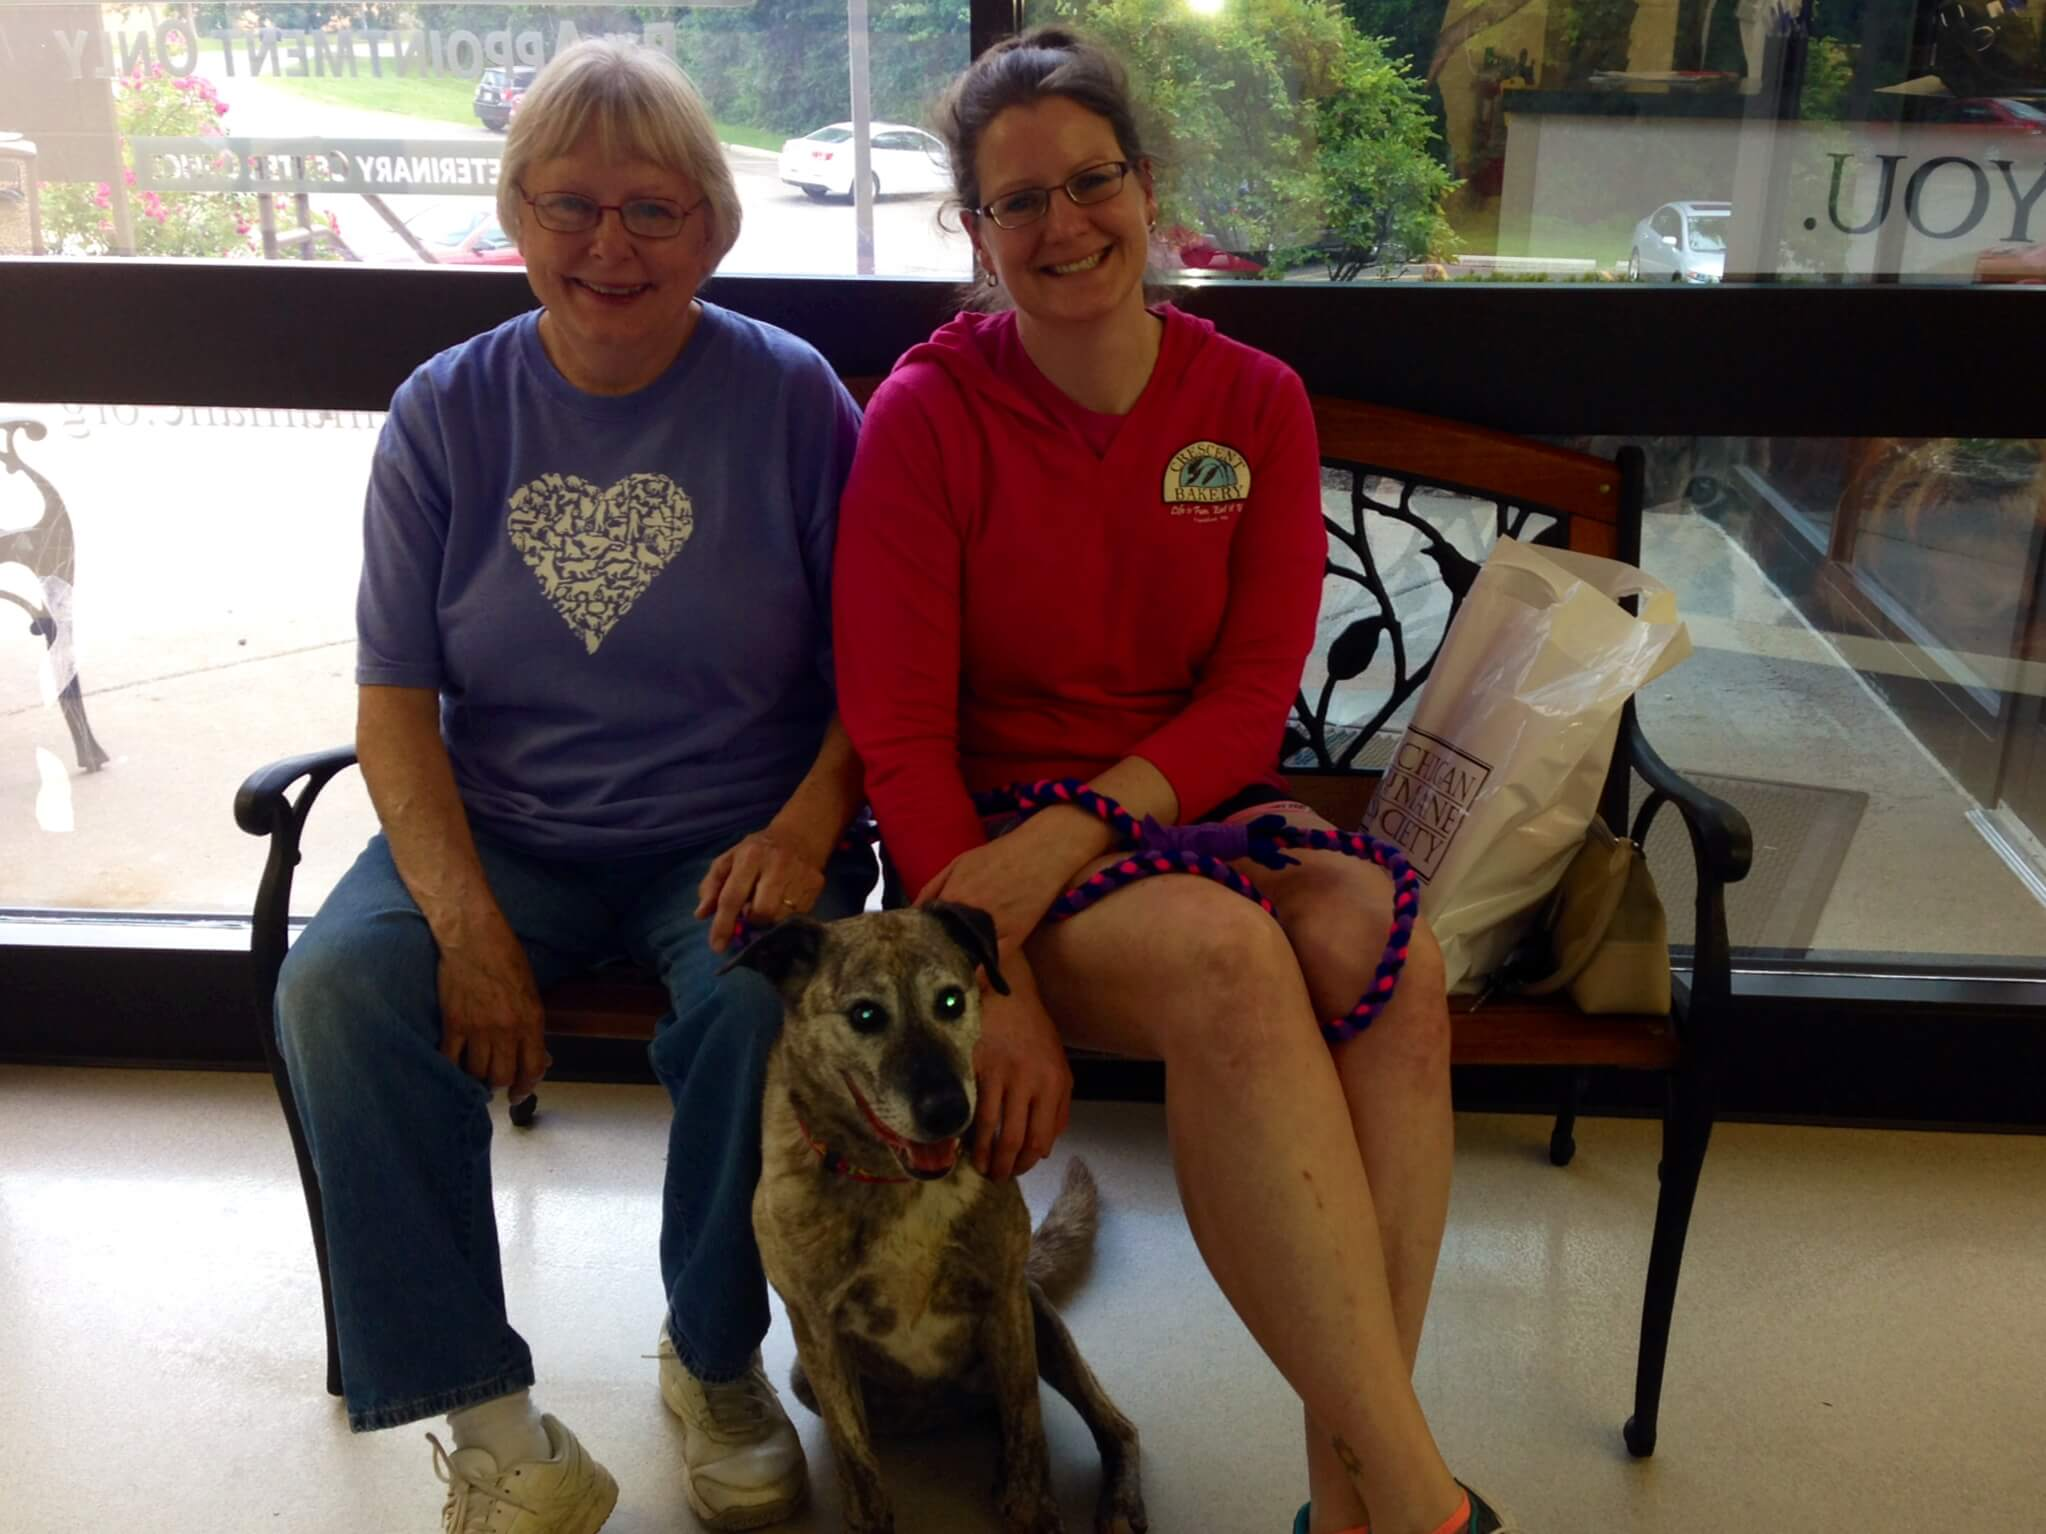 Senior dog Miss Brittney had been with us for quite a while, and found her perfect home thanks to our AARP partnership!